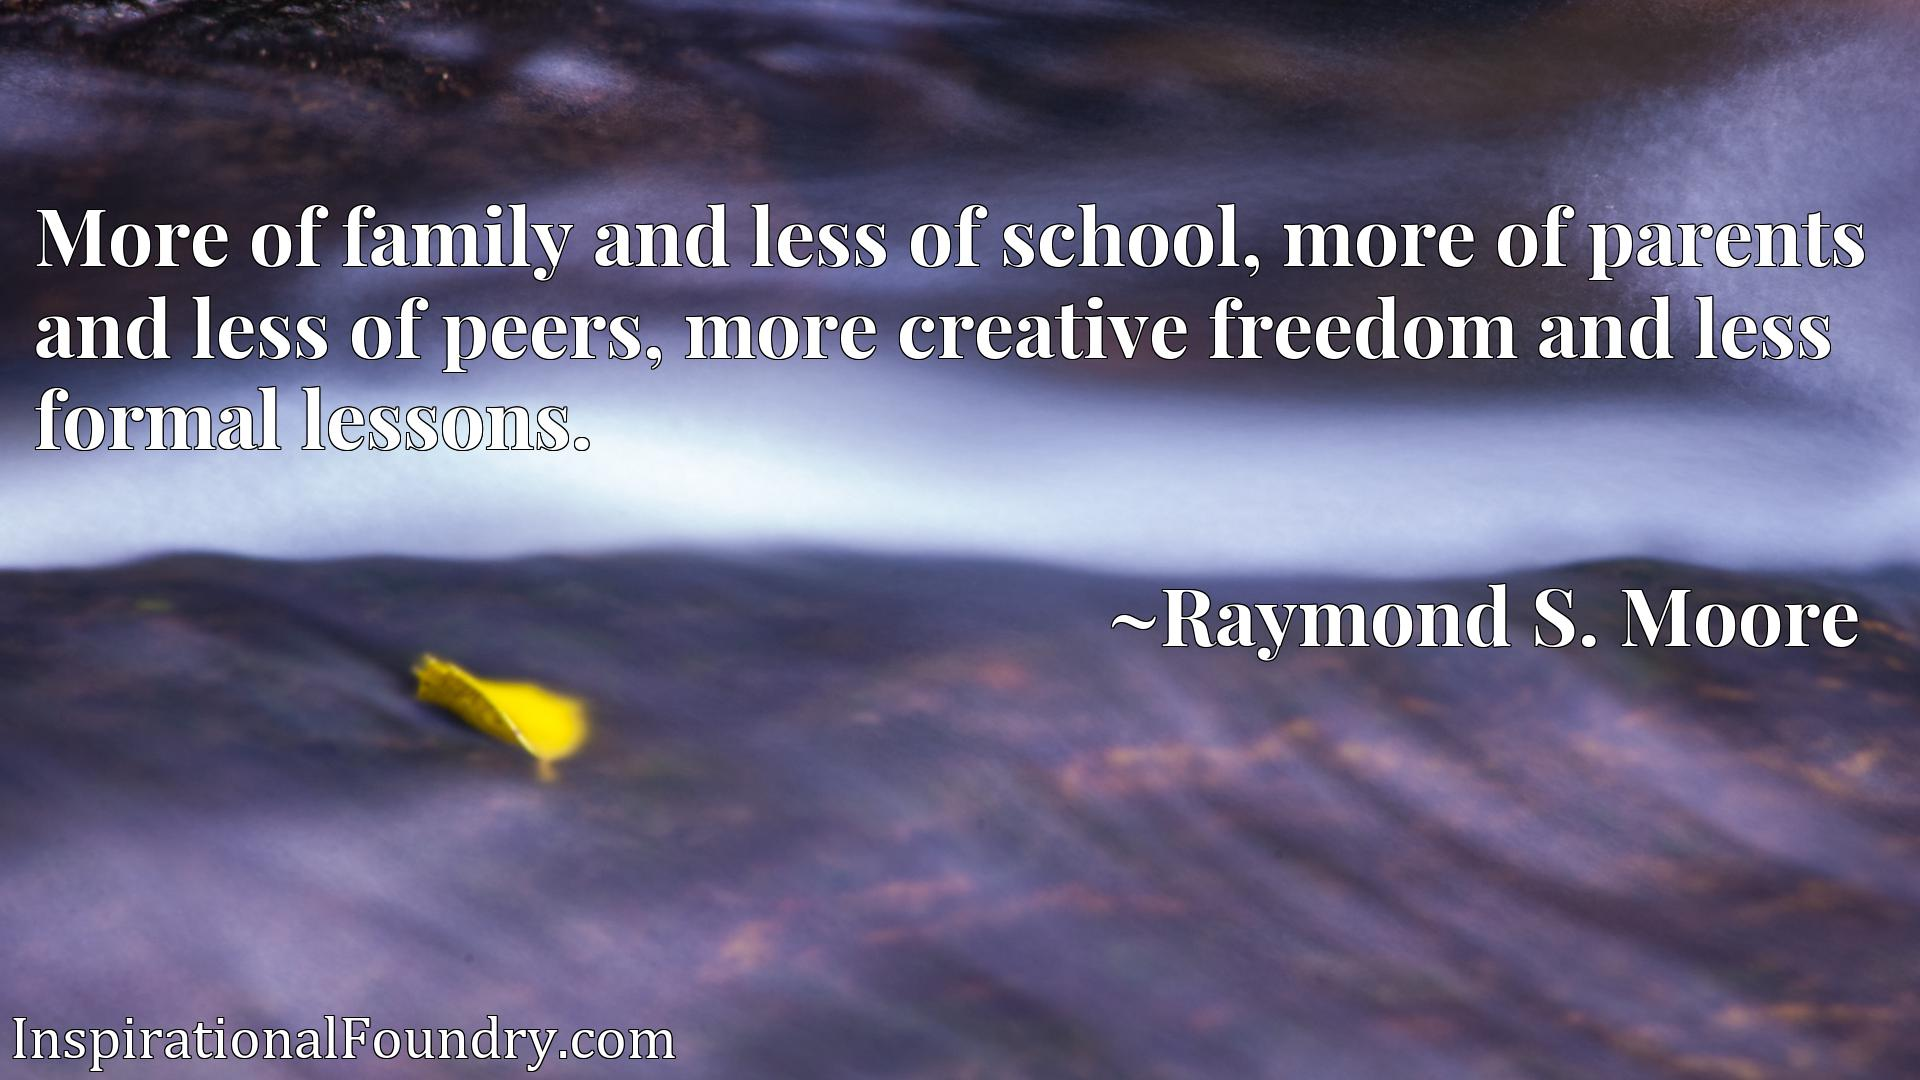 More of family and less of school, more of parents and less of peers, more creative freedom and less formal lessons.